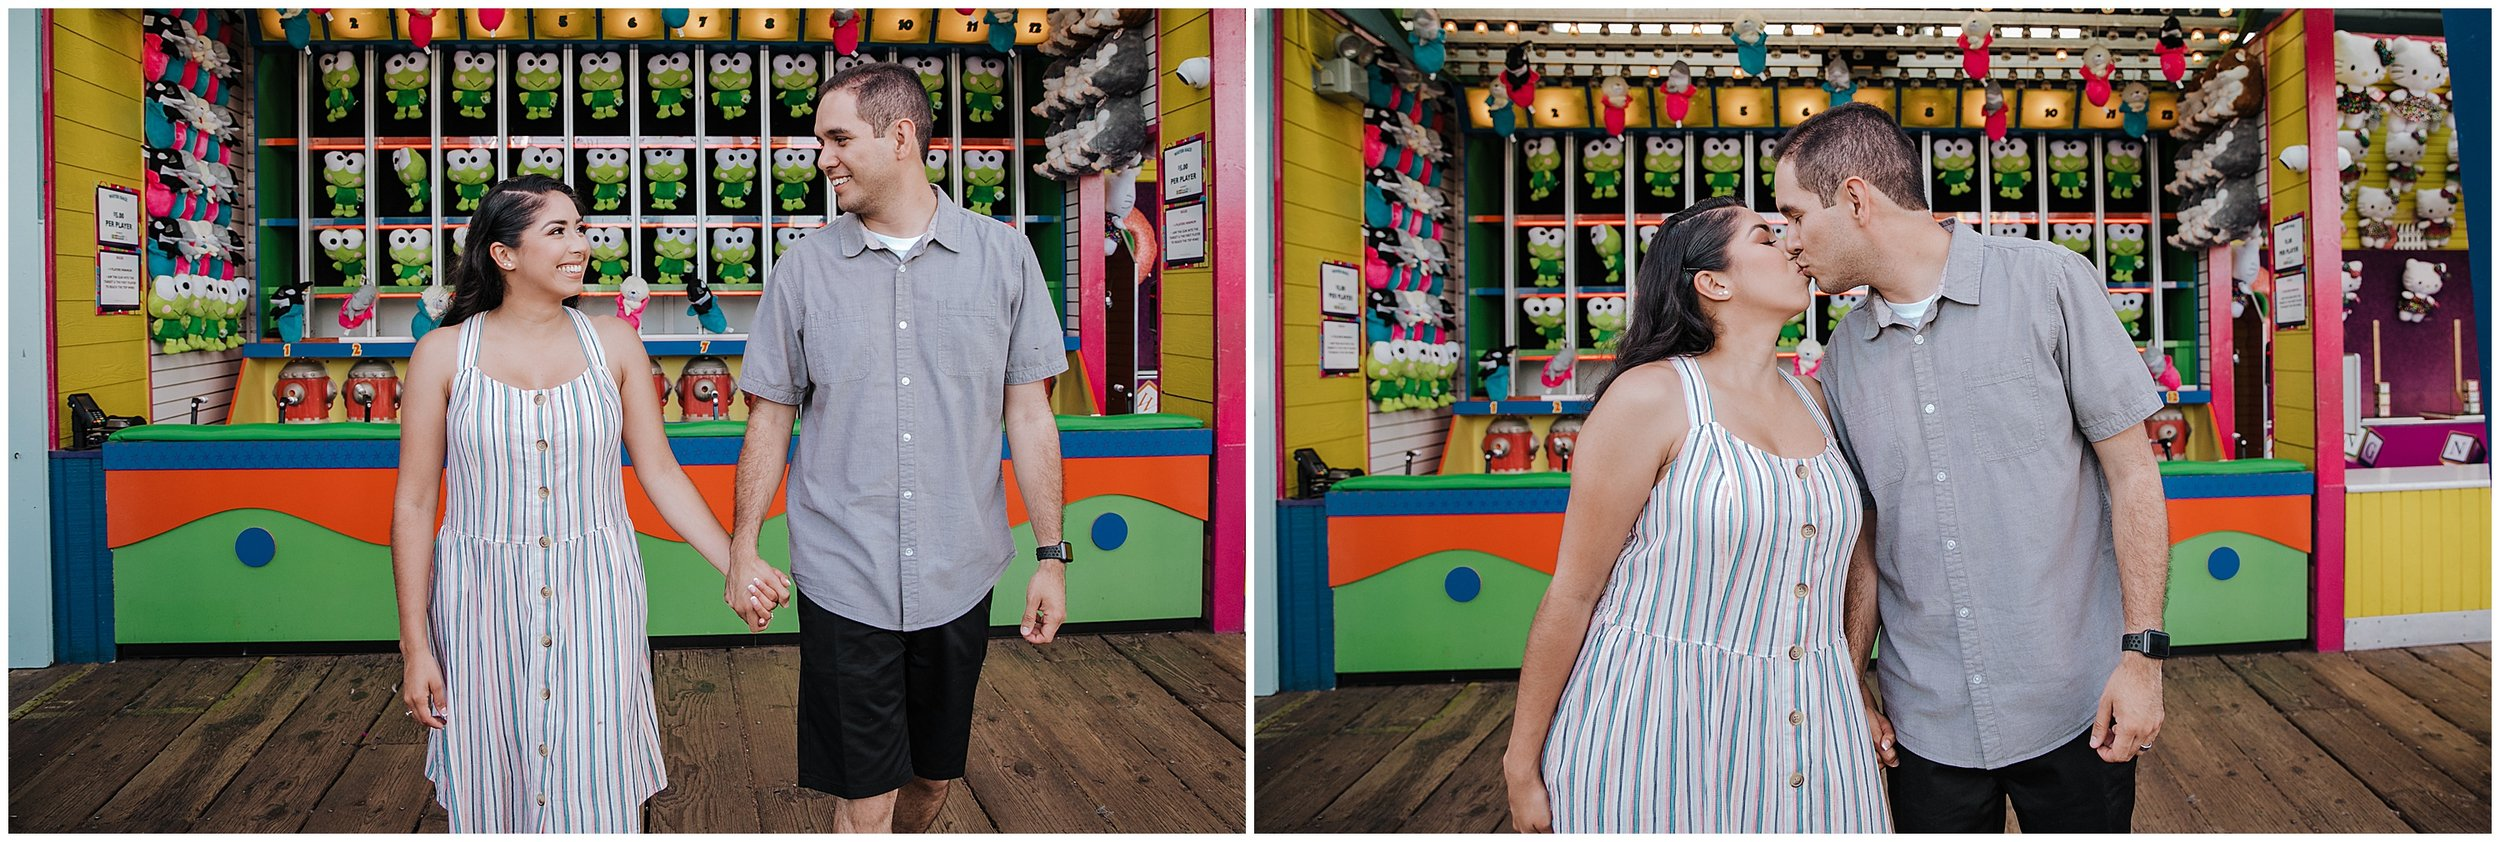 santa monica engagement-kellaphotography-laweddingphotographer_0031.jpg